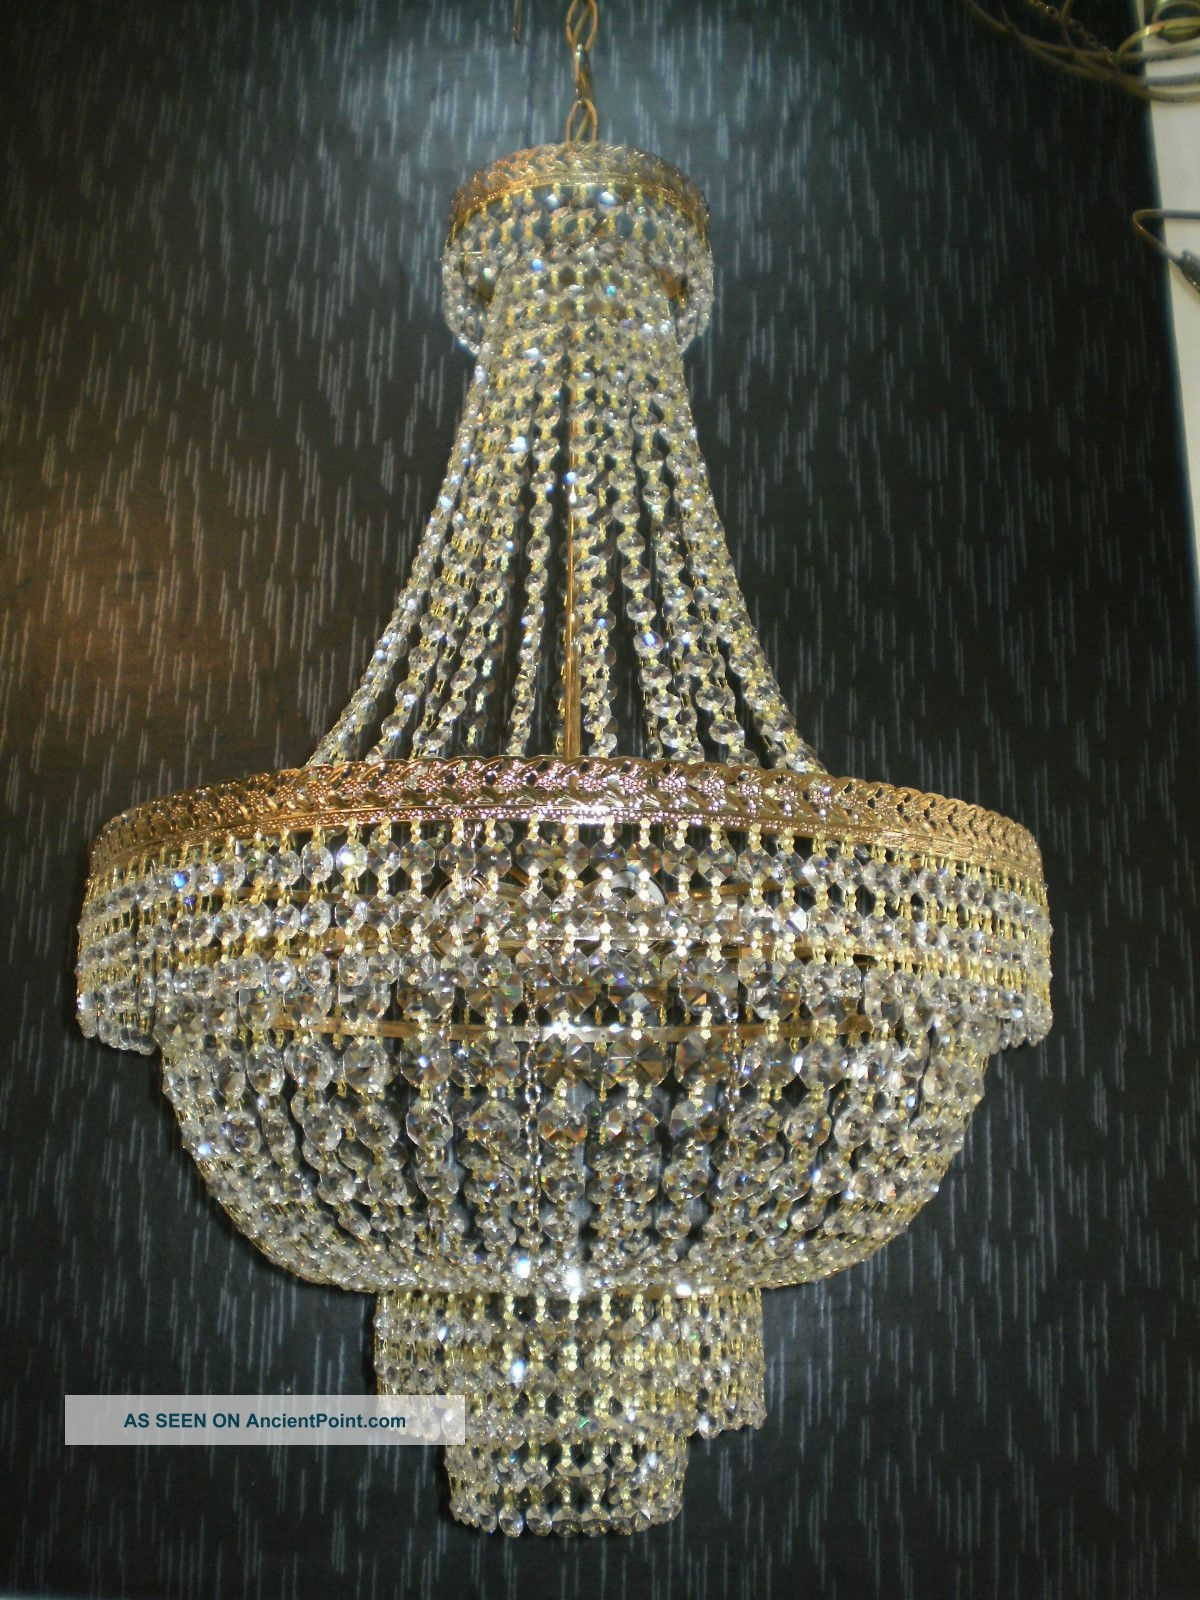 Modern Crystal Chandeliers Home Decor Within Large Crystal Chandeliers (View 13 of 15)